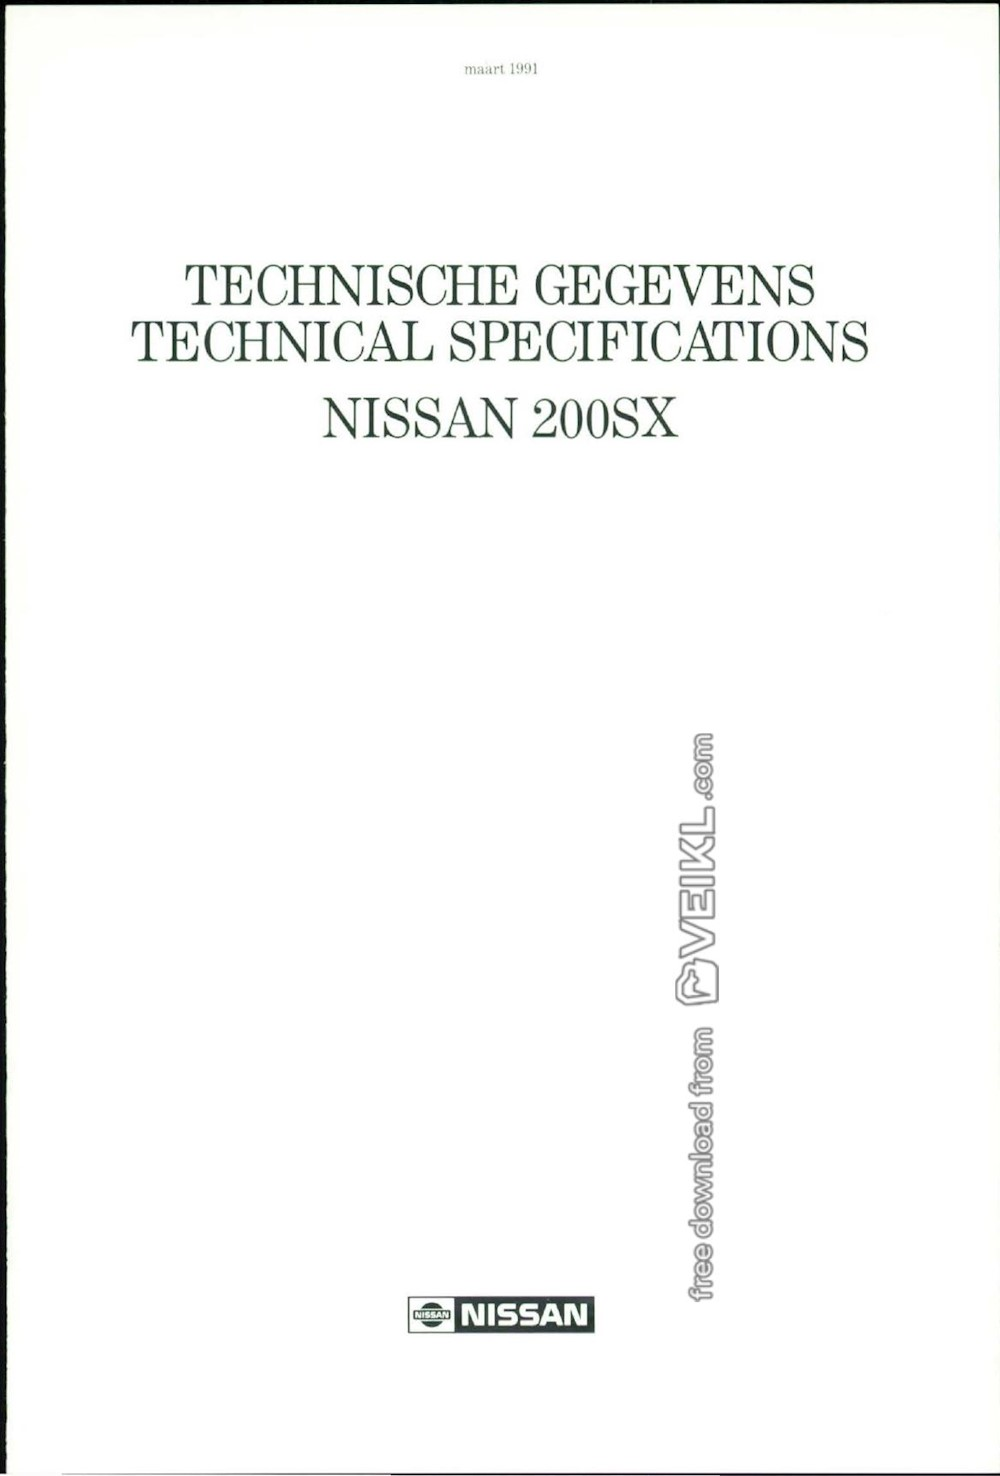 Nissan 200SX Technical Tech Specs 1991 NL